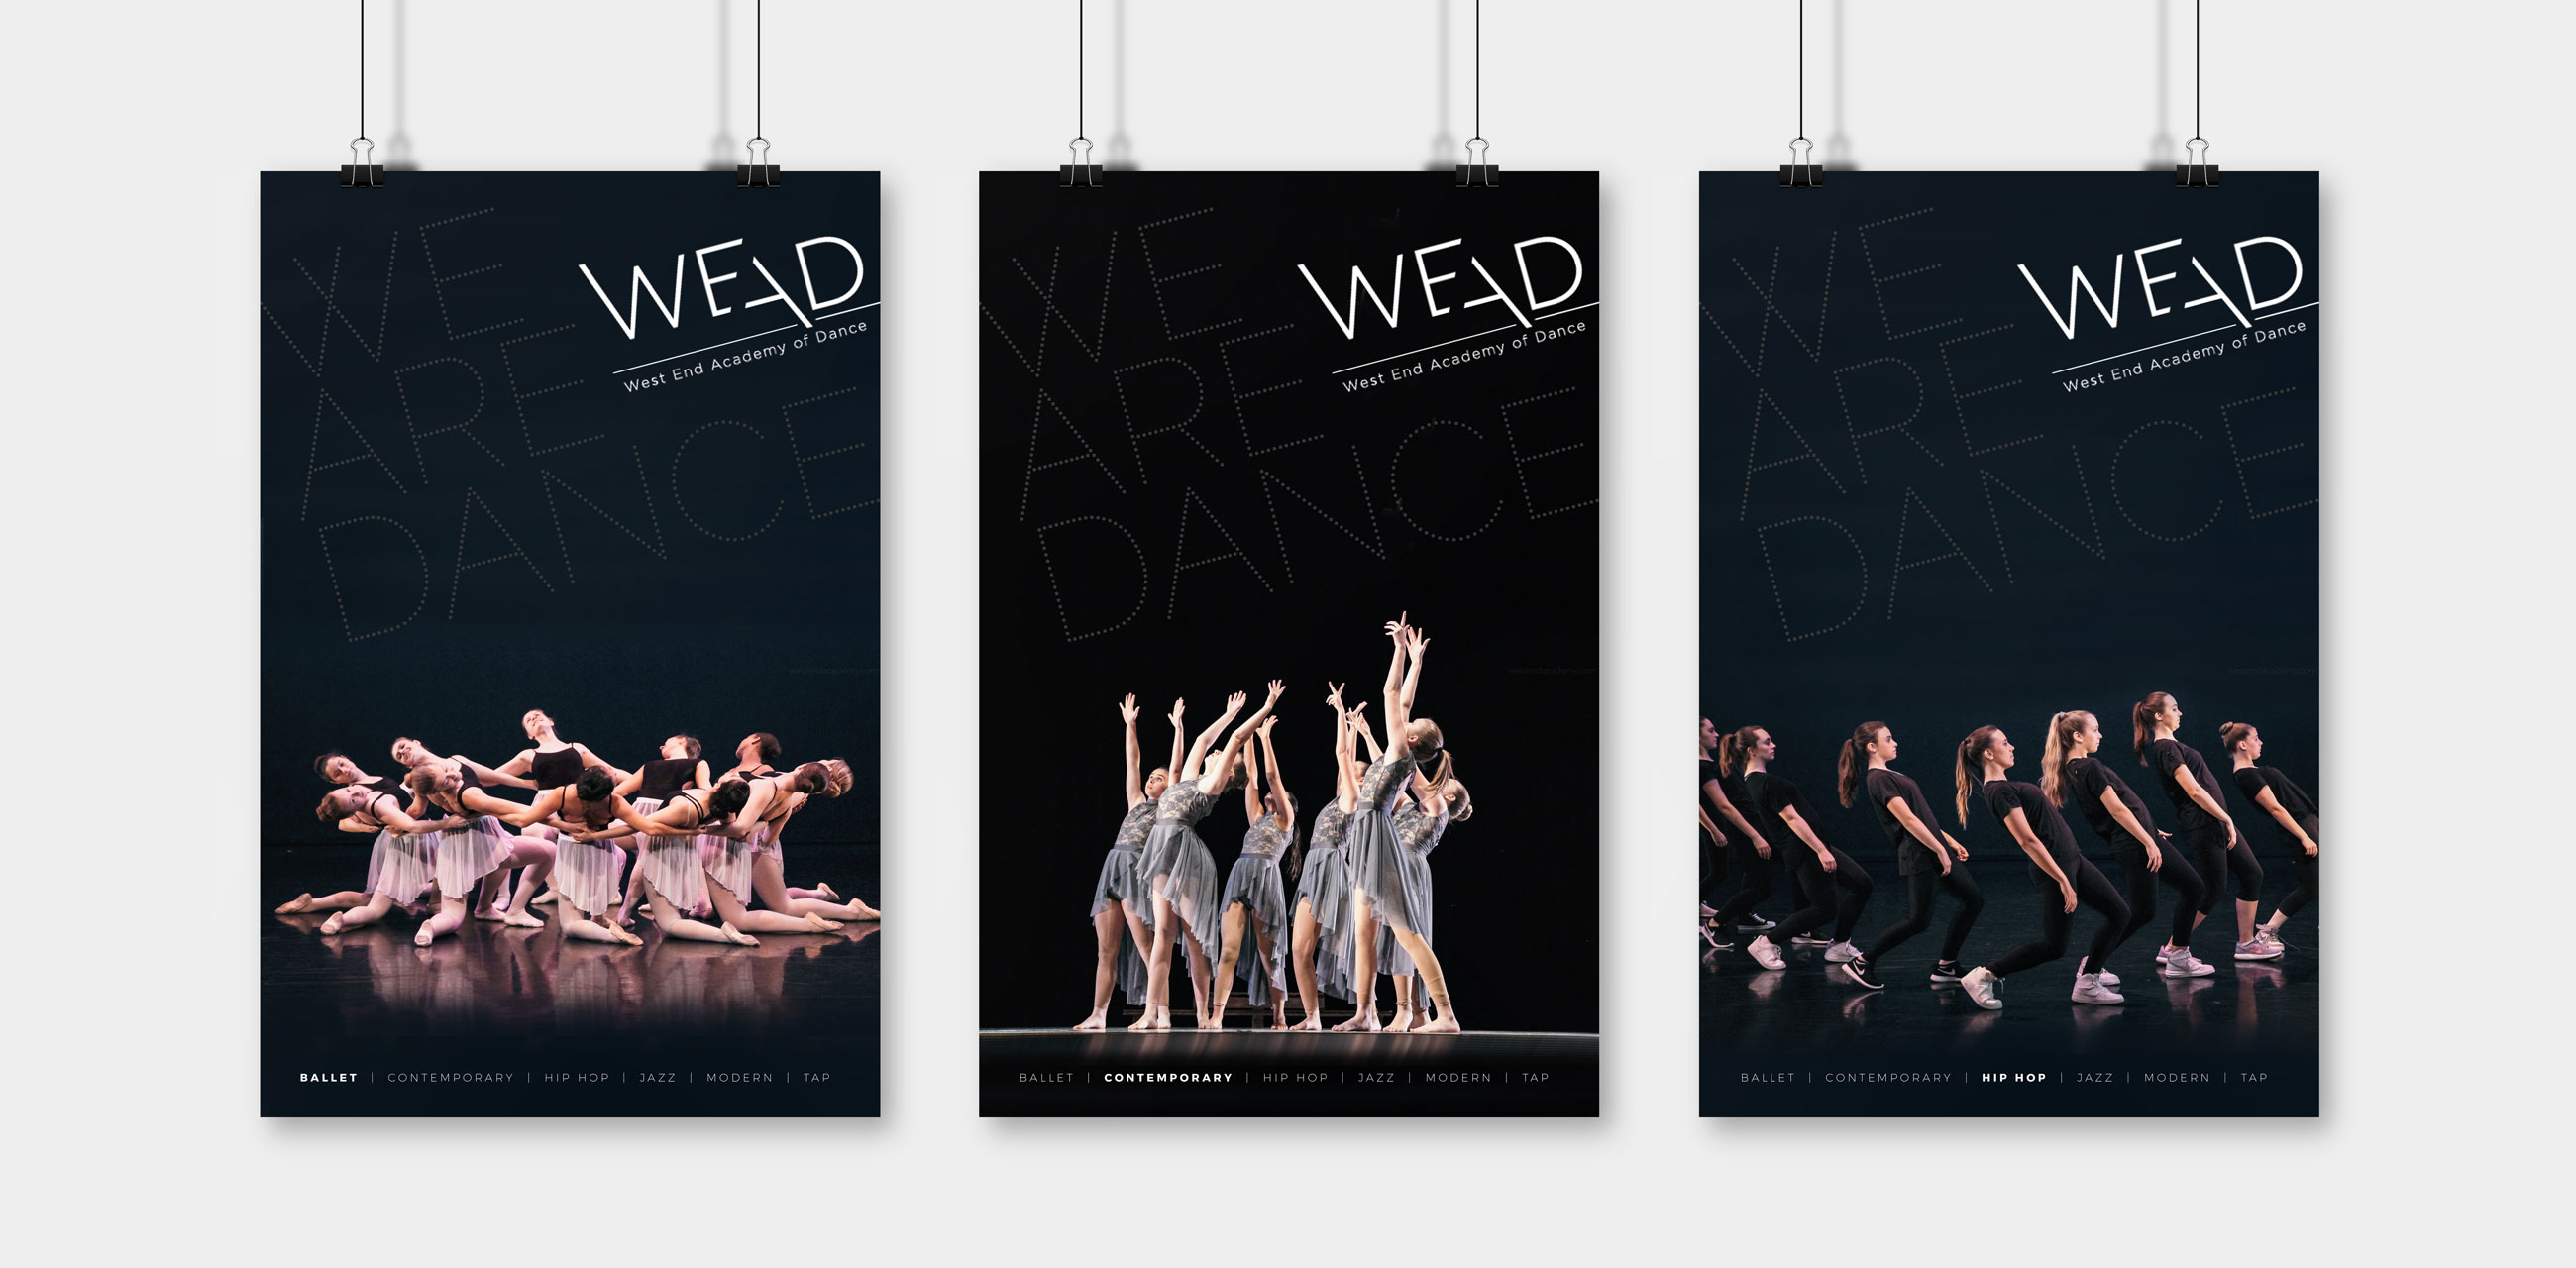 WEAD posters